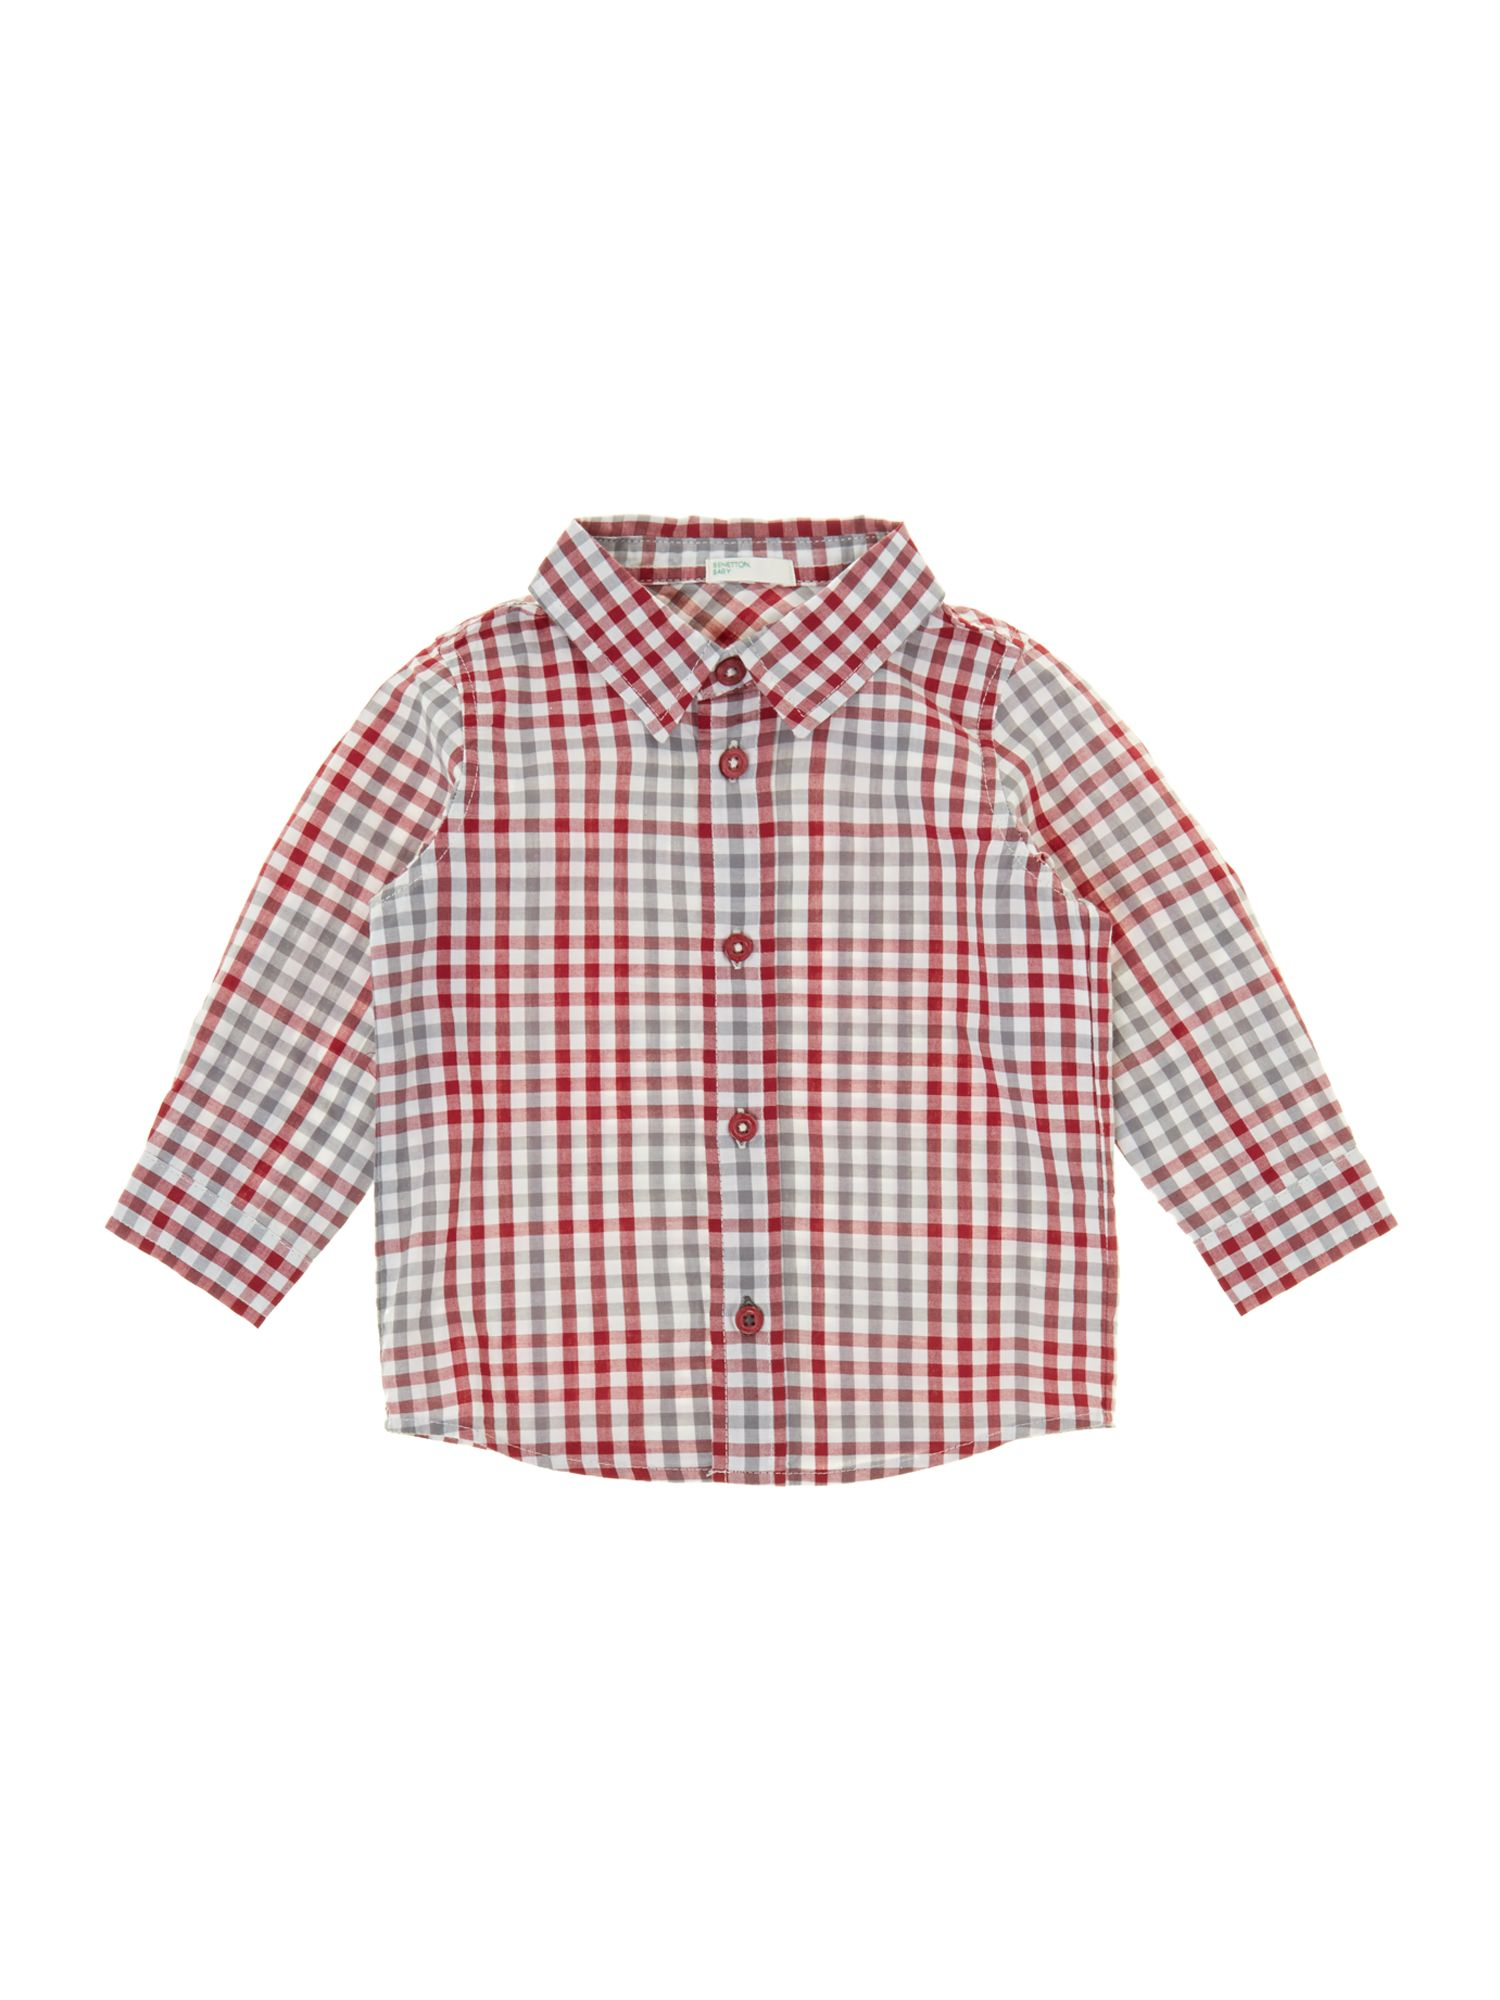 Baby boy lightweight gingham check shirt